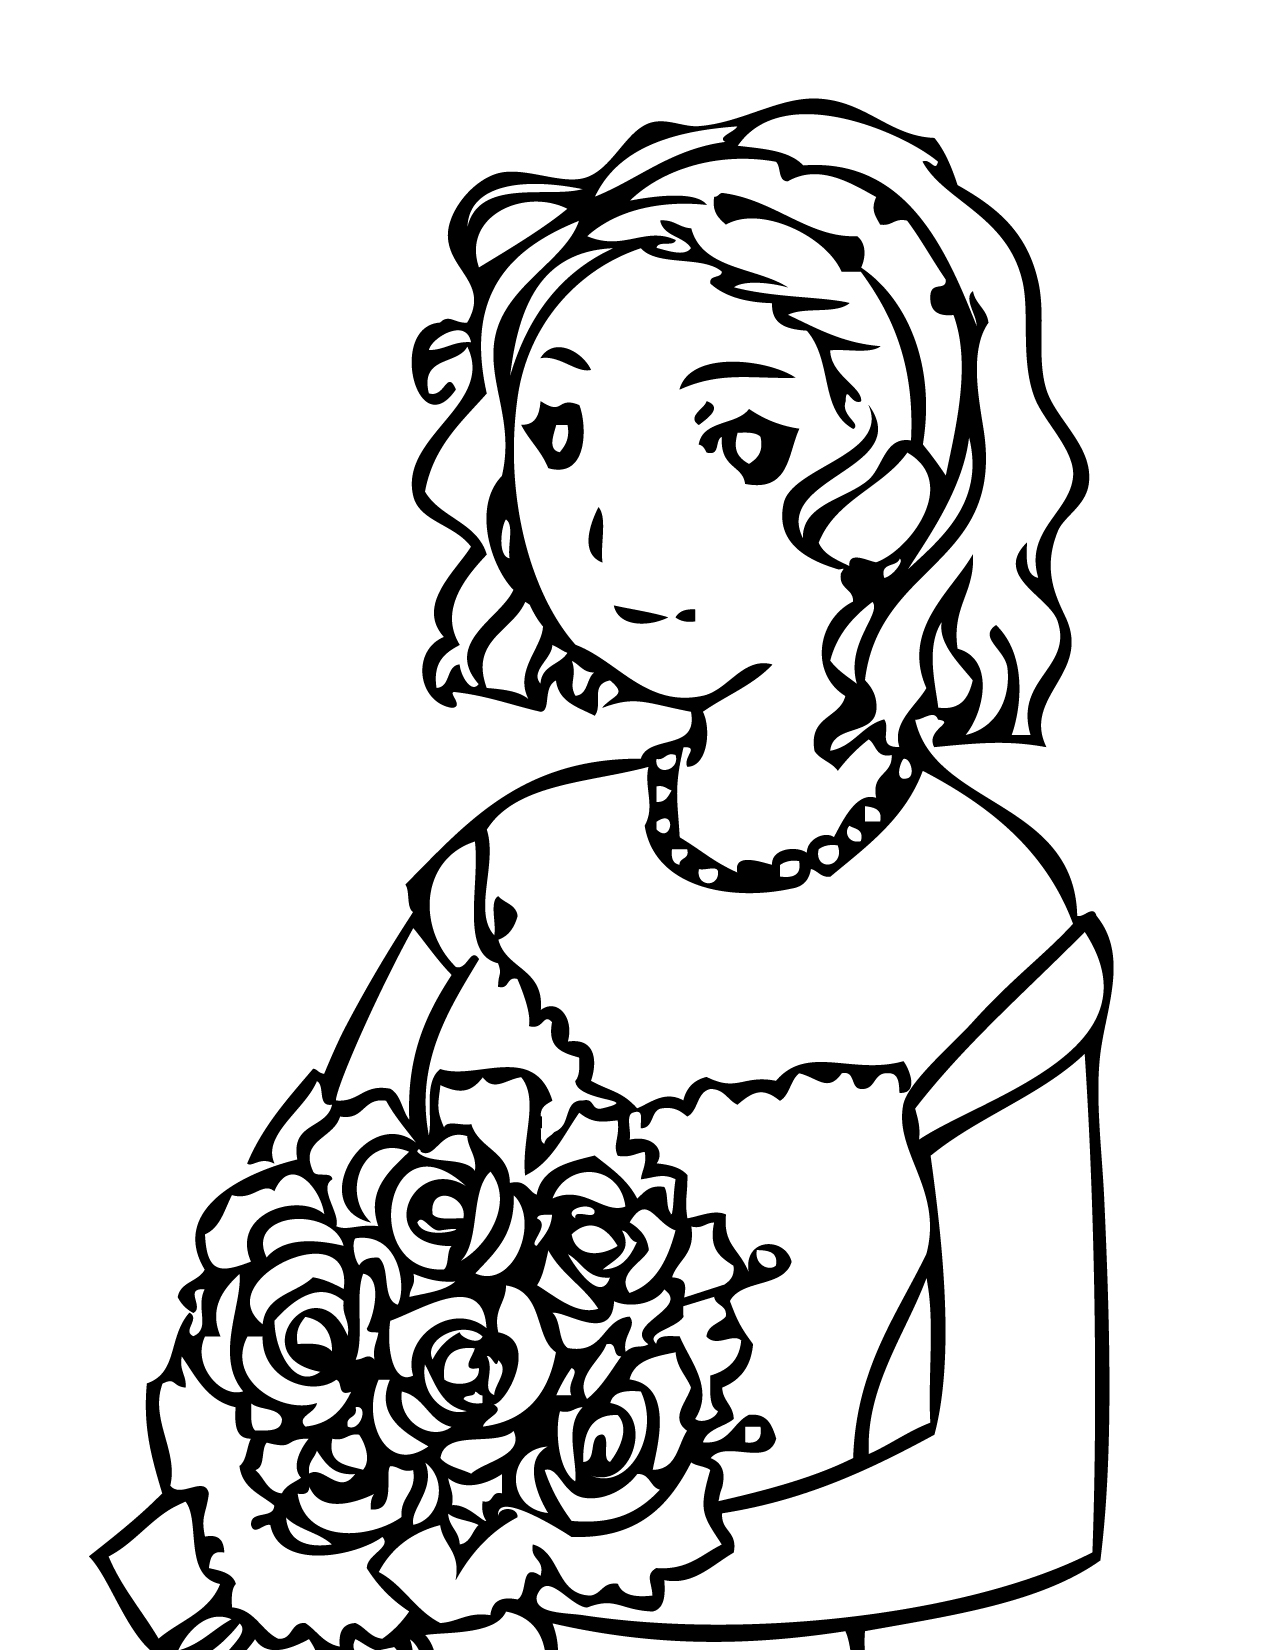 Q and u wedding coloring pages - Simple Wedding Coloring Pages To Print Print This Page Wedding Coloring With Wedding Coloring Pages For Kids